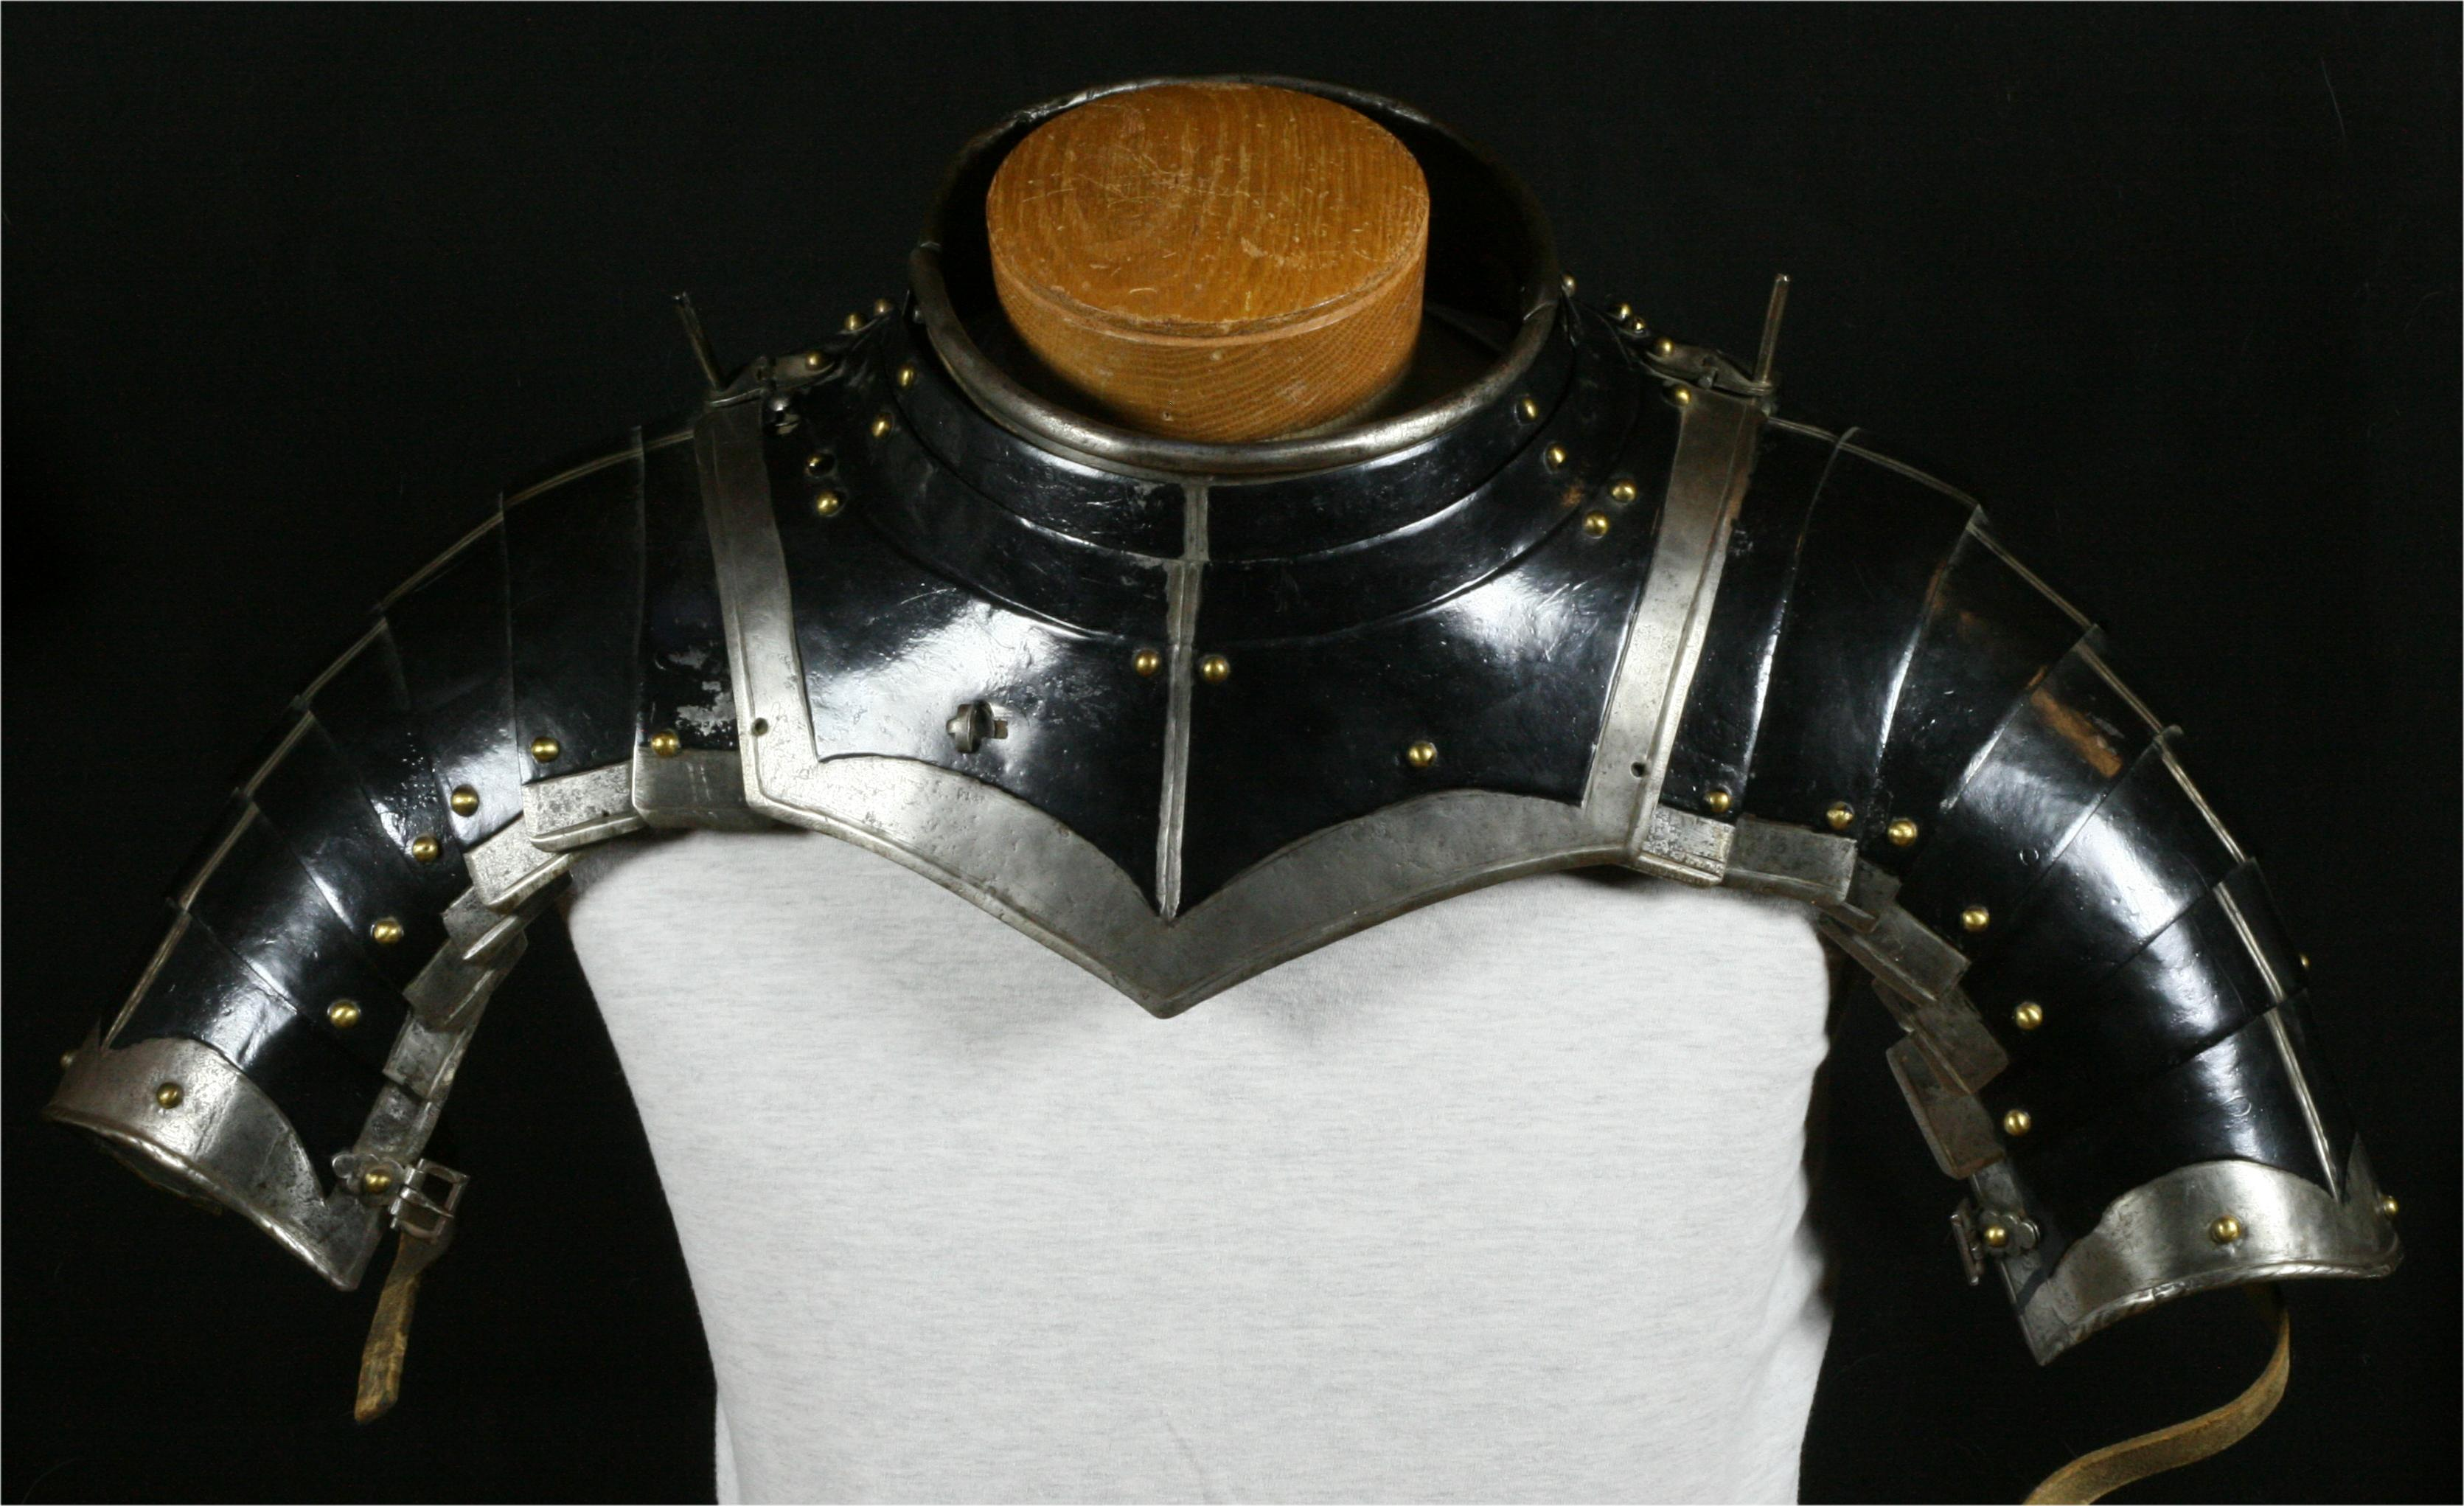 Gorget with munions - A-219-a